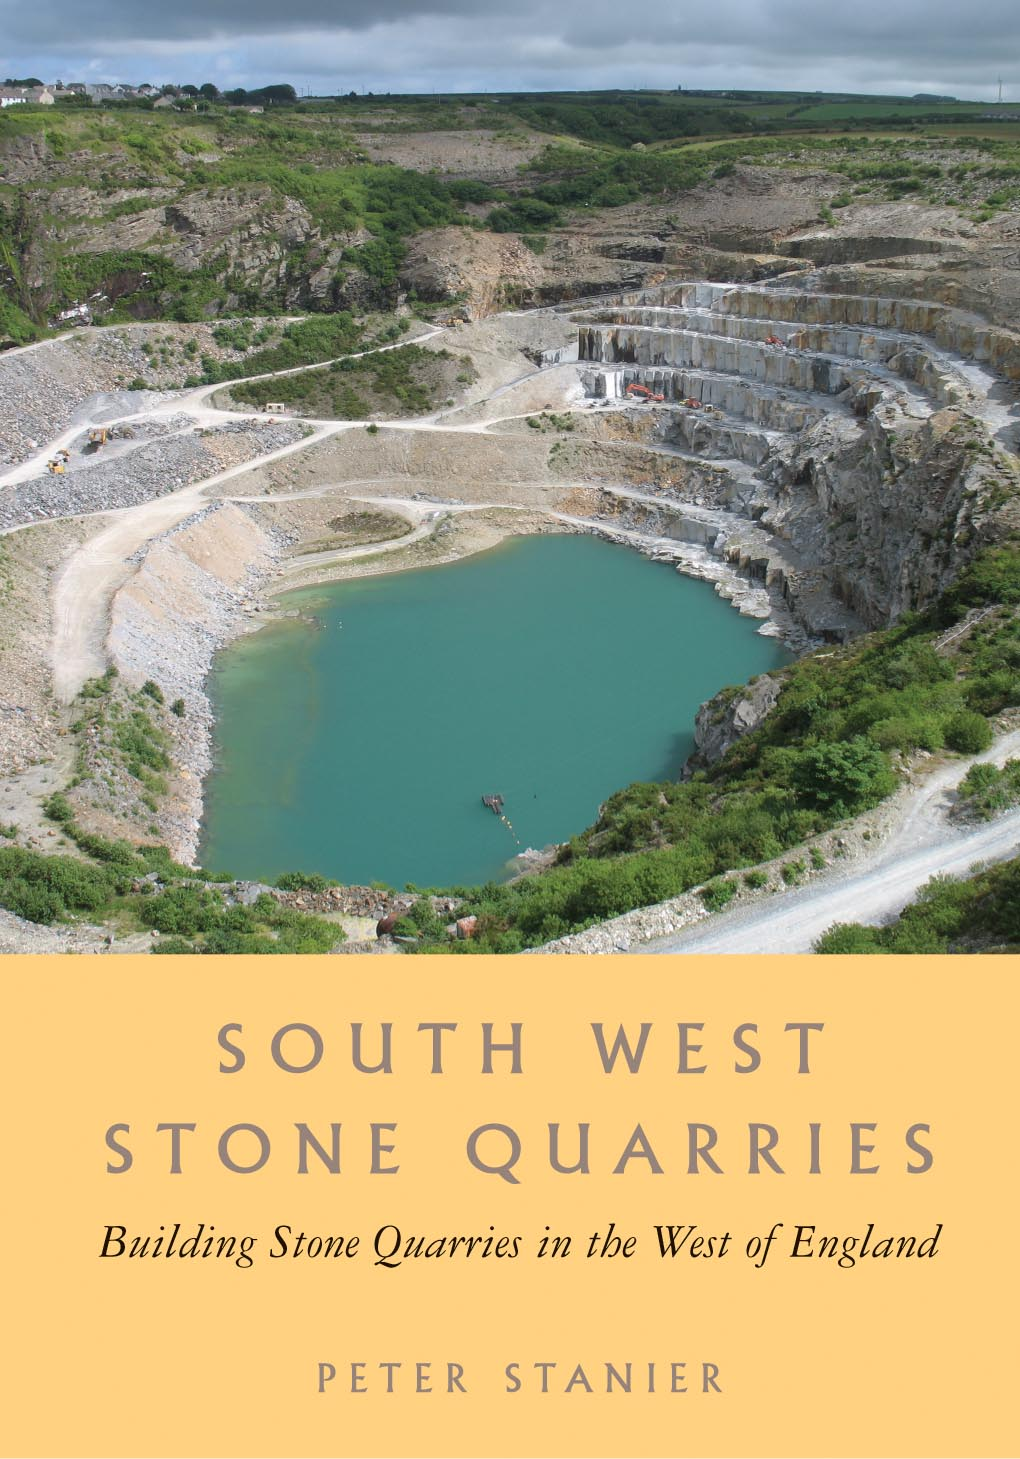 South West Stone Quarries; Building Stone Quarries in the West of England